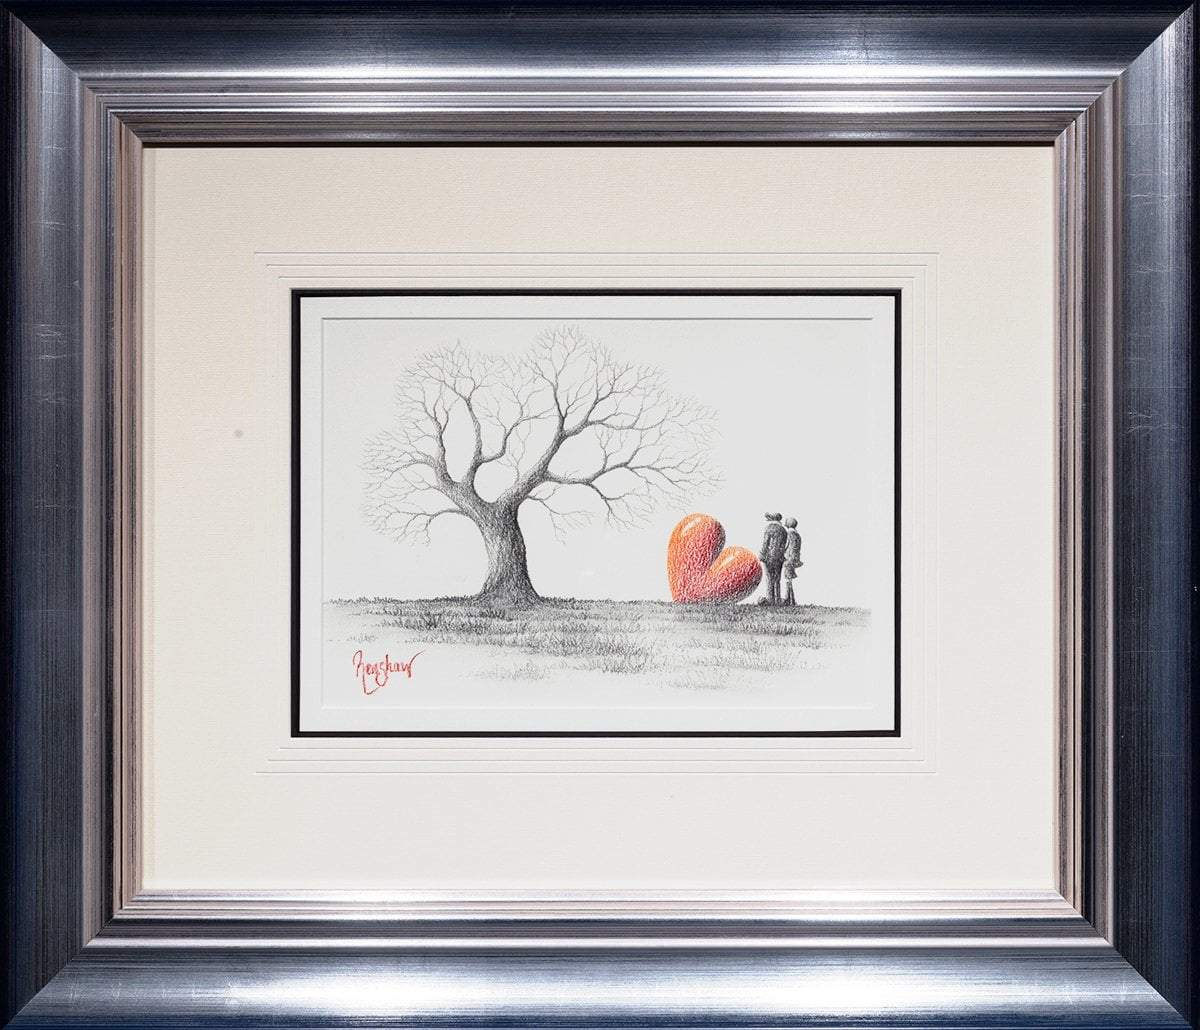 Turning of The Seasons - Original Sketch David Renshaw Framed